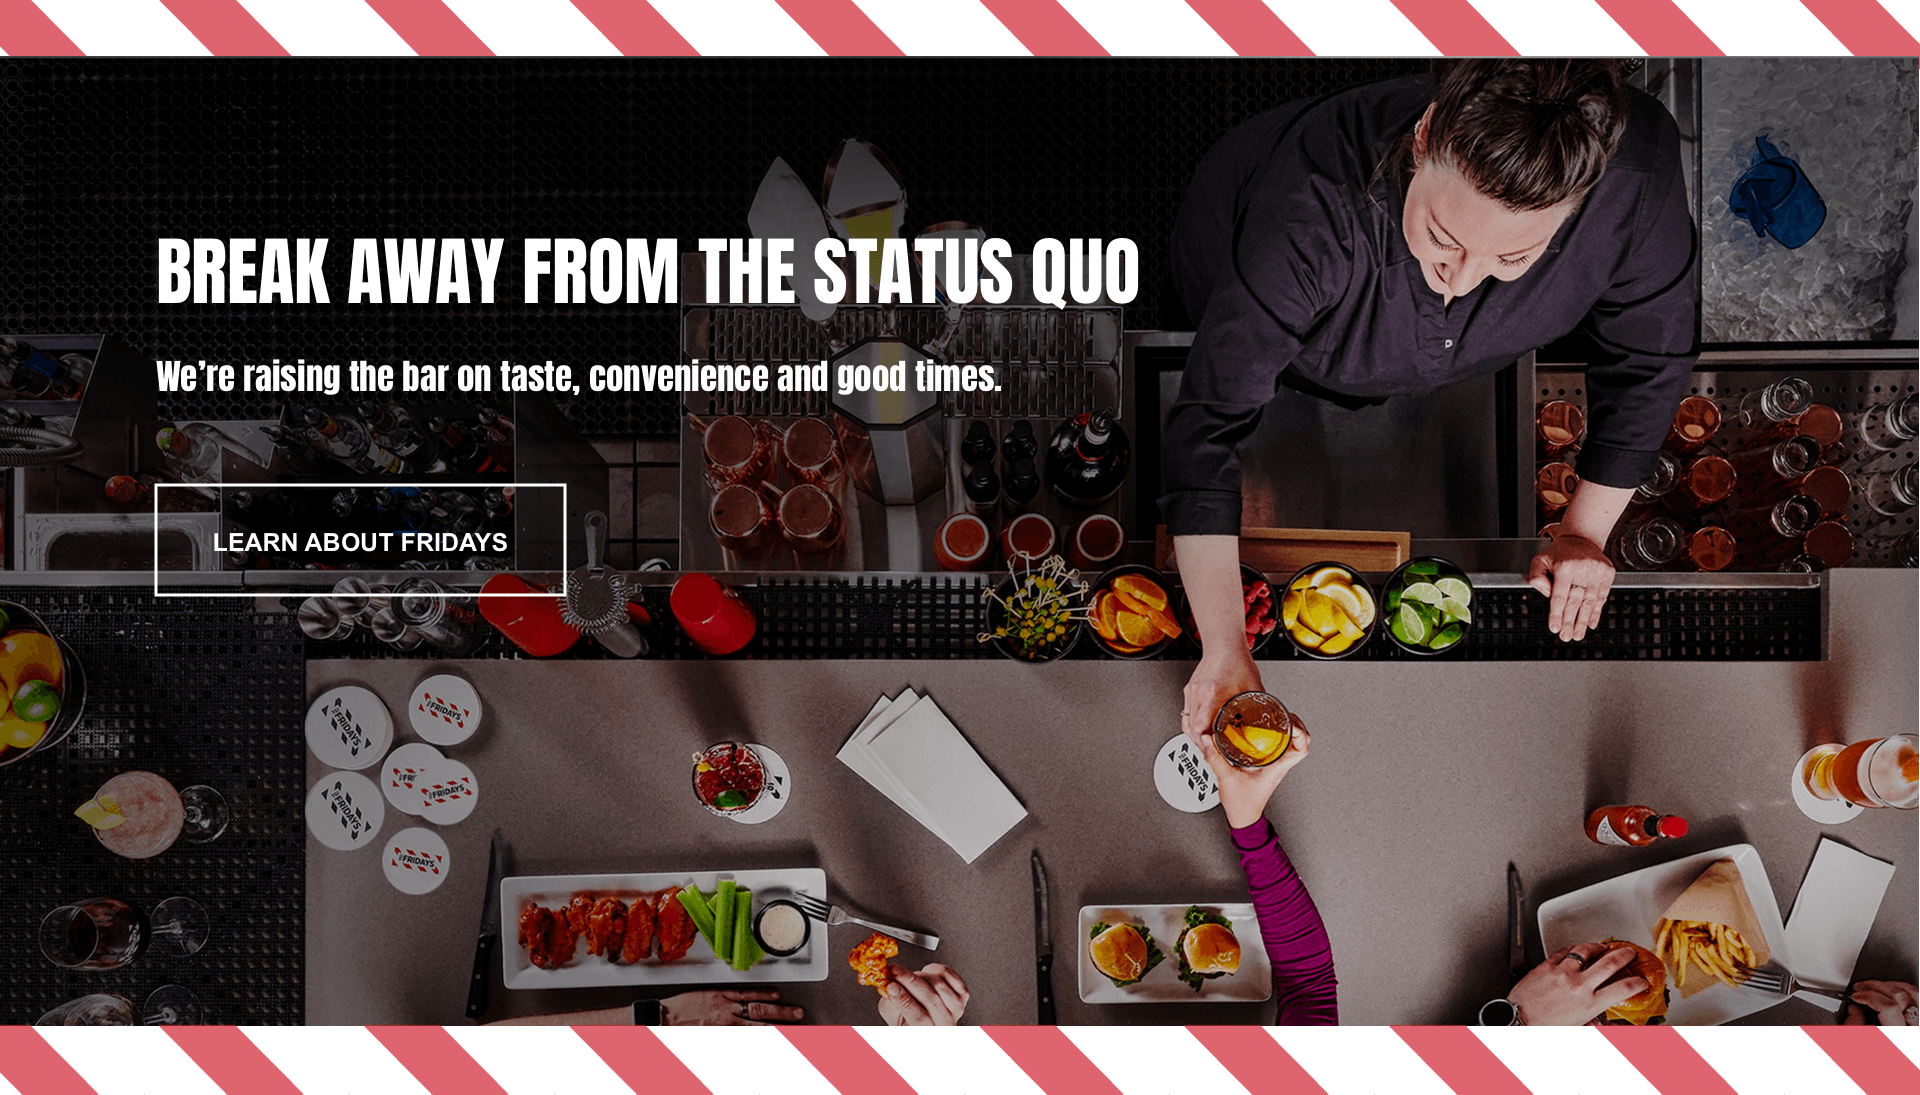 Section 6 redesign concept of TGI Fridays' website.